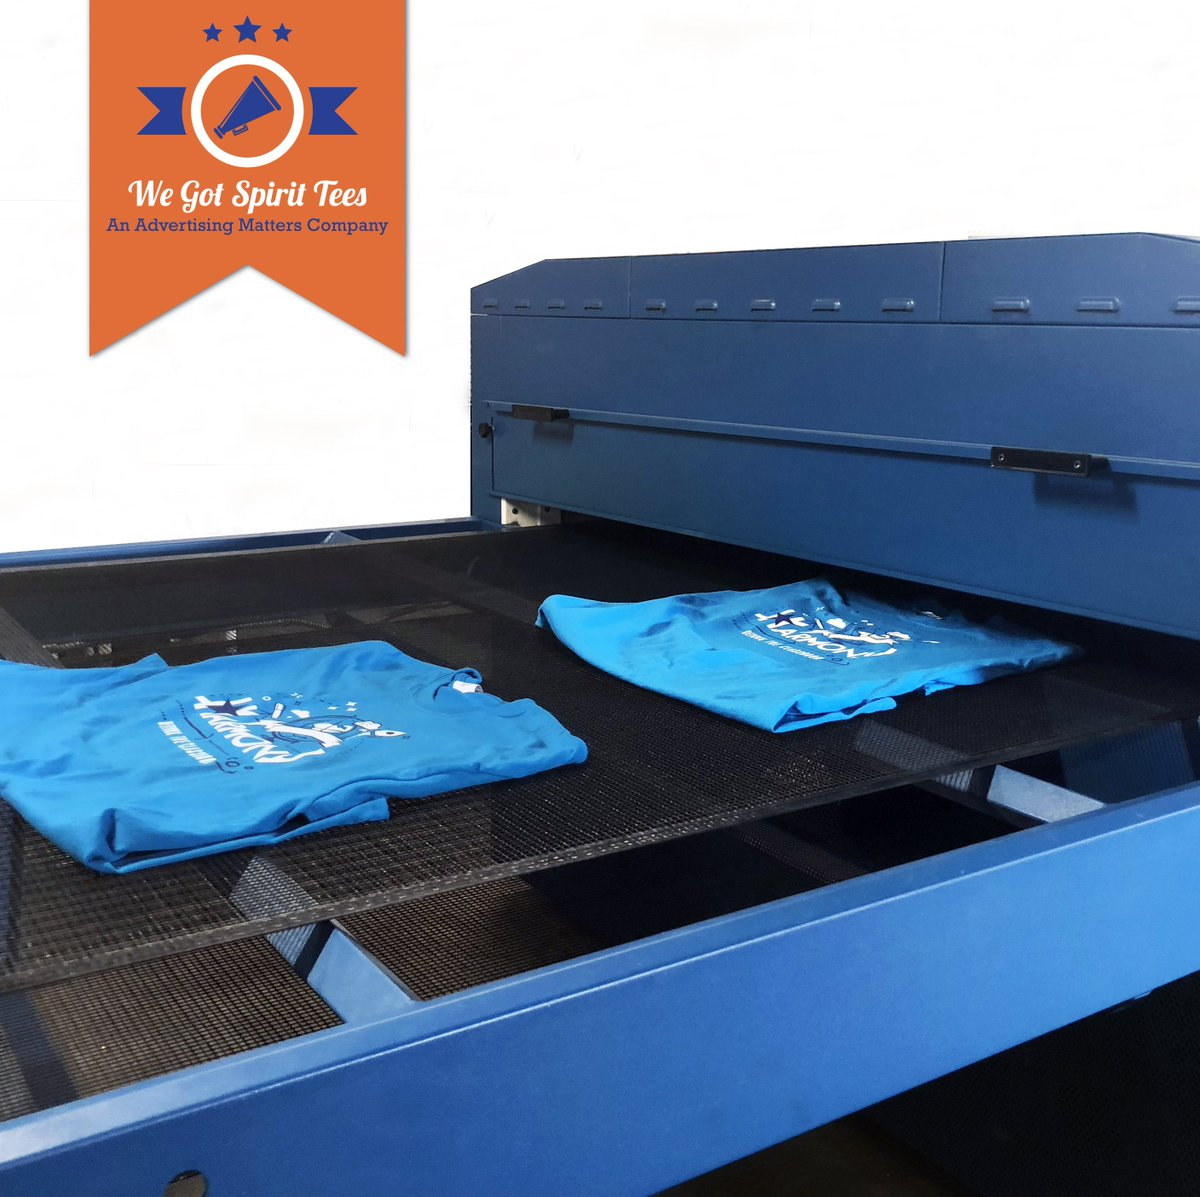 Another set of t shirts hot off the press are ready to go! Our turnaround is 6 business days for any t shirt orders.  Call us at (817) 244-0762 or email sales@advertising-matters.com to create an order! 😀 #WeGotSpiritTees https://t.co/ghPc0wS4Ra